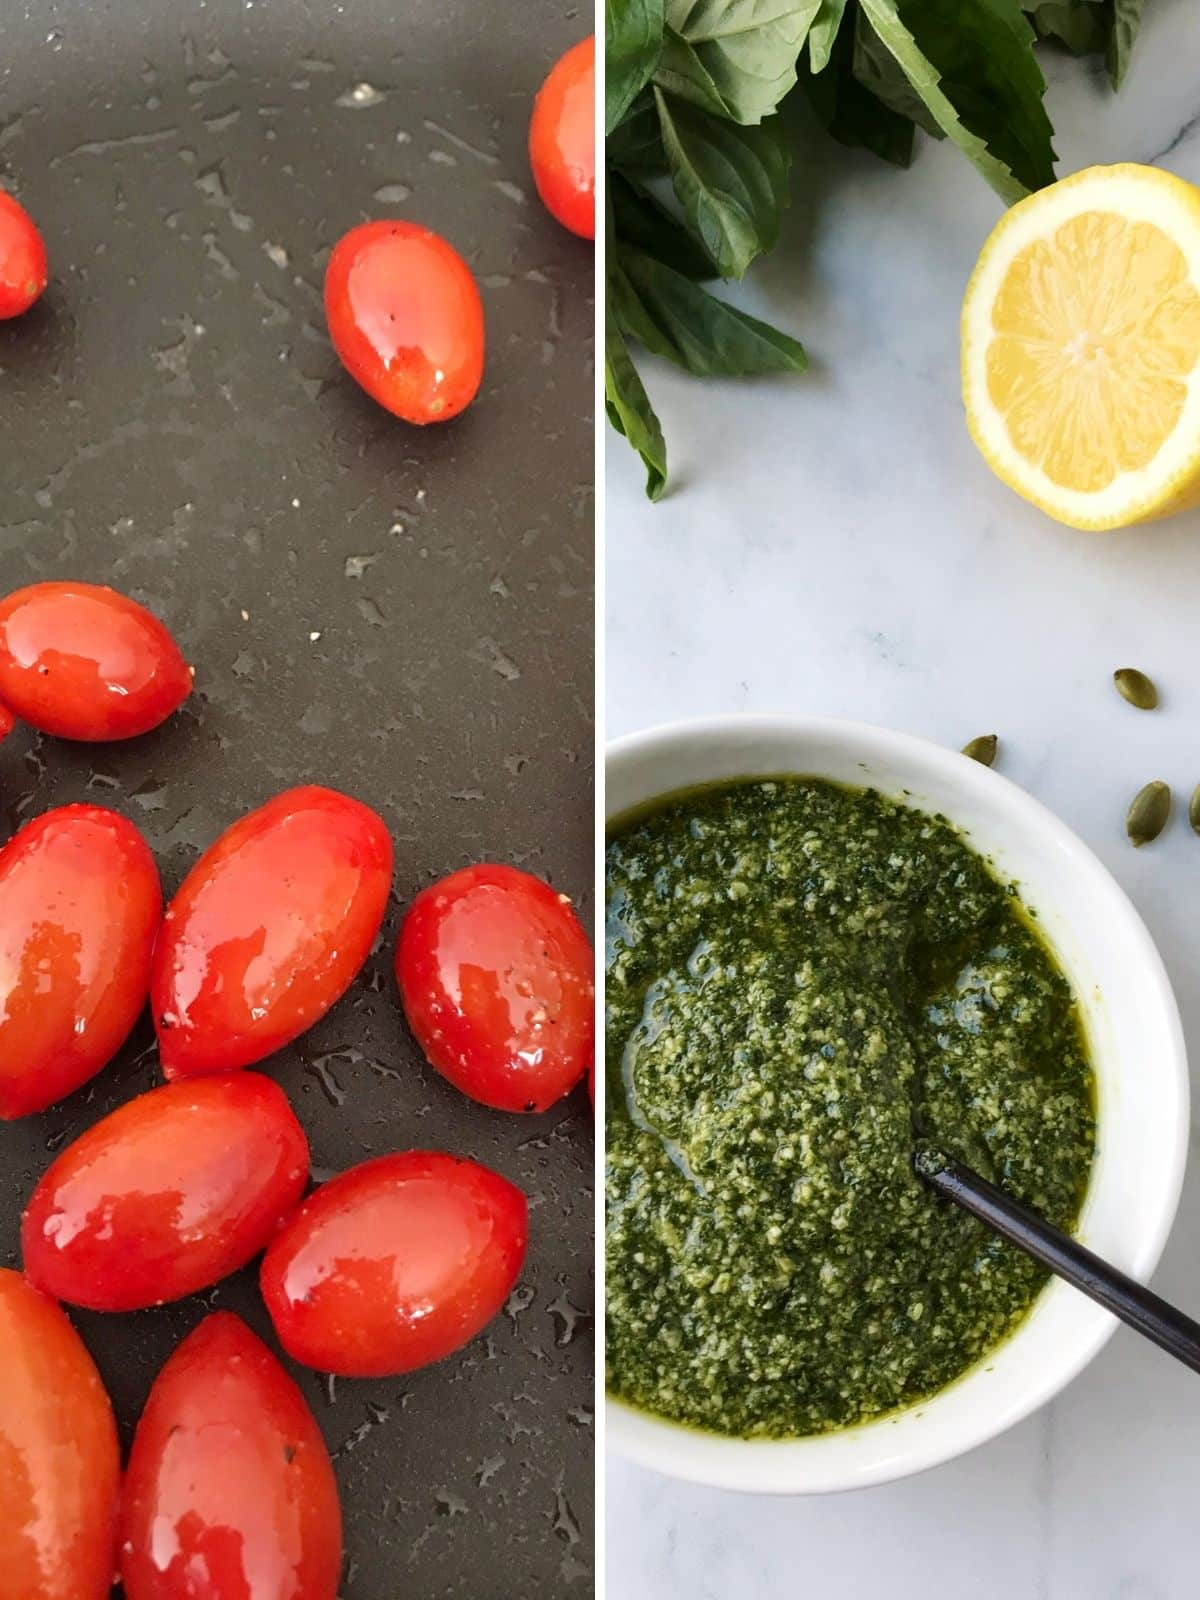 grape tomatoes in a pan and a dish of pesto